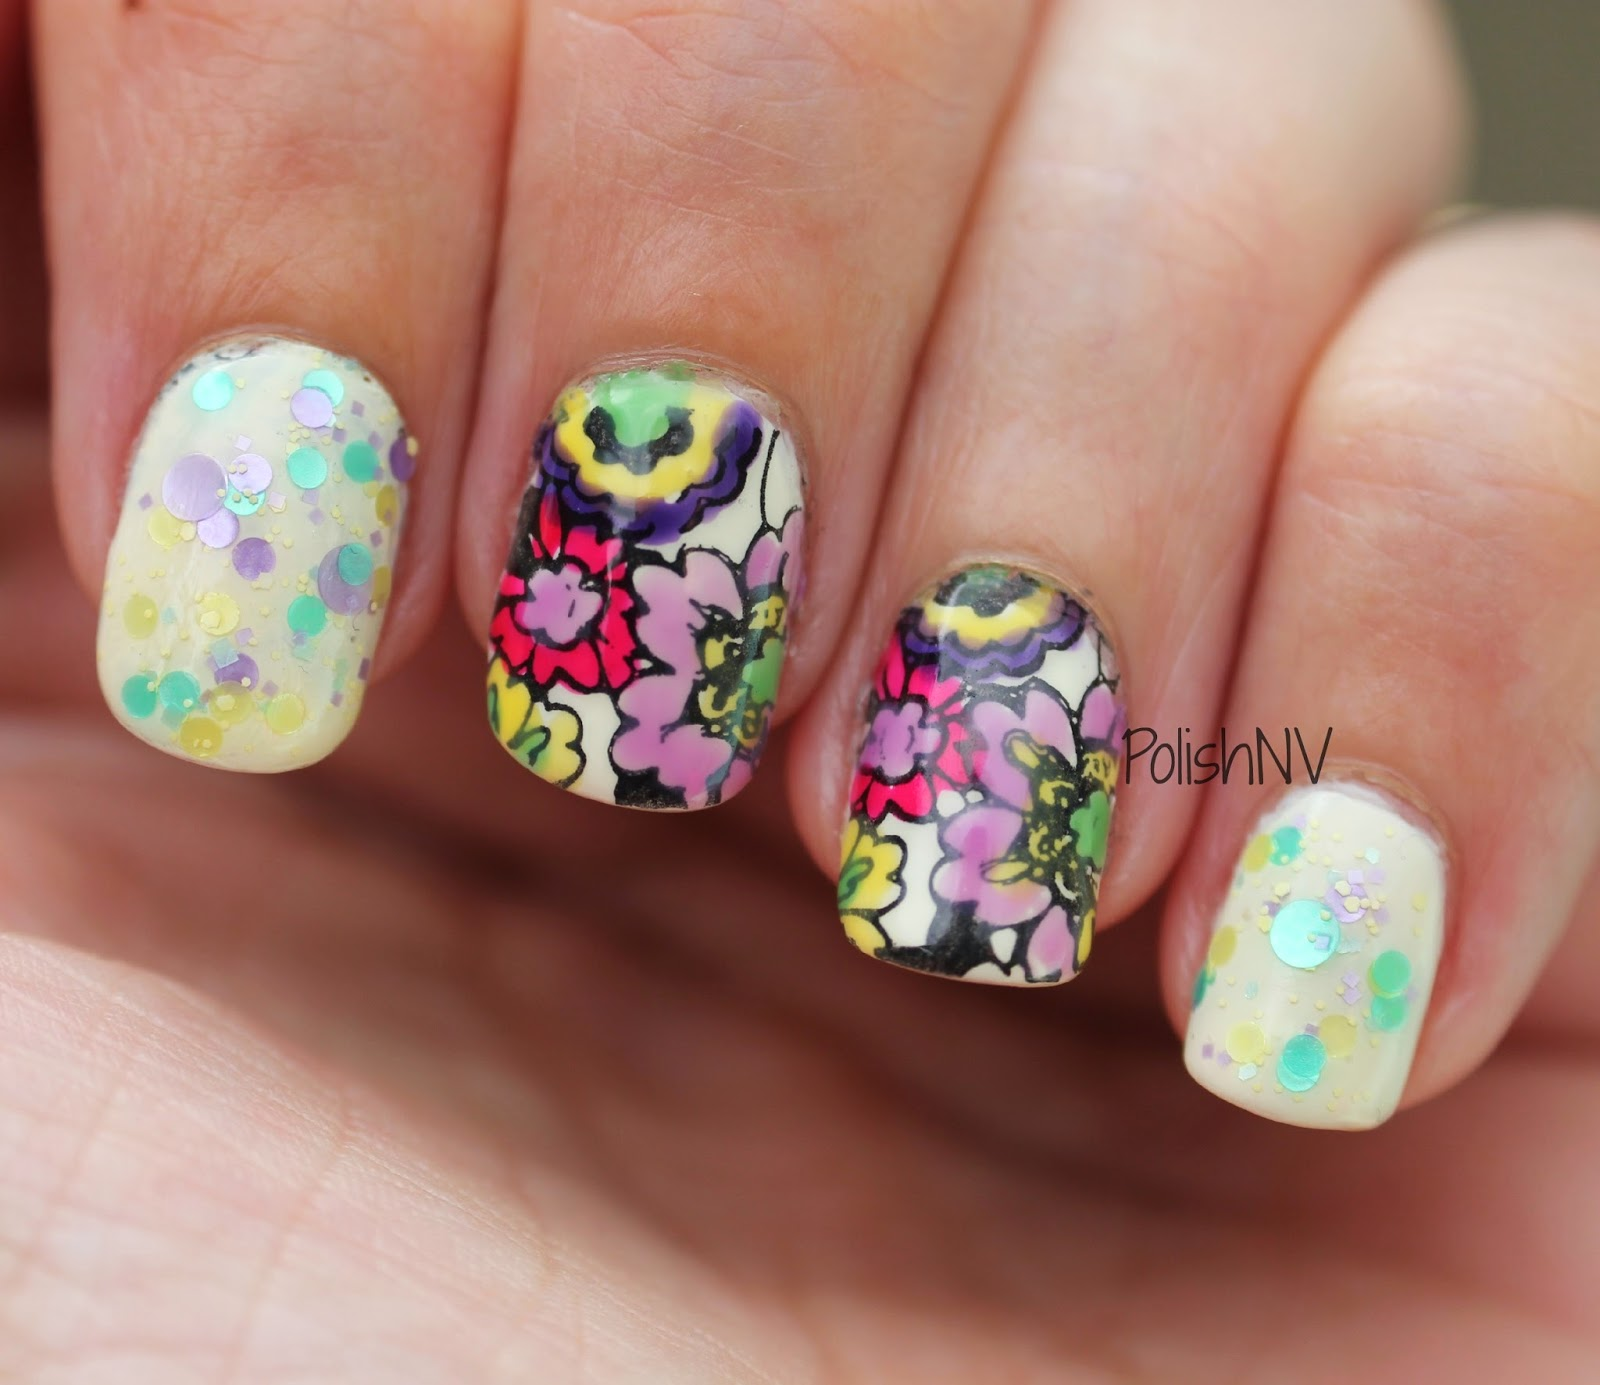 jelly polish stamping